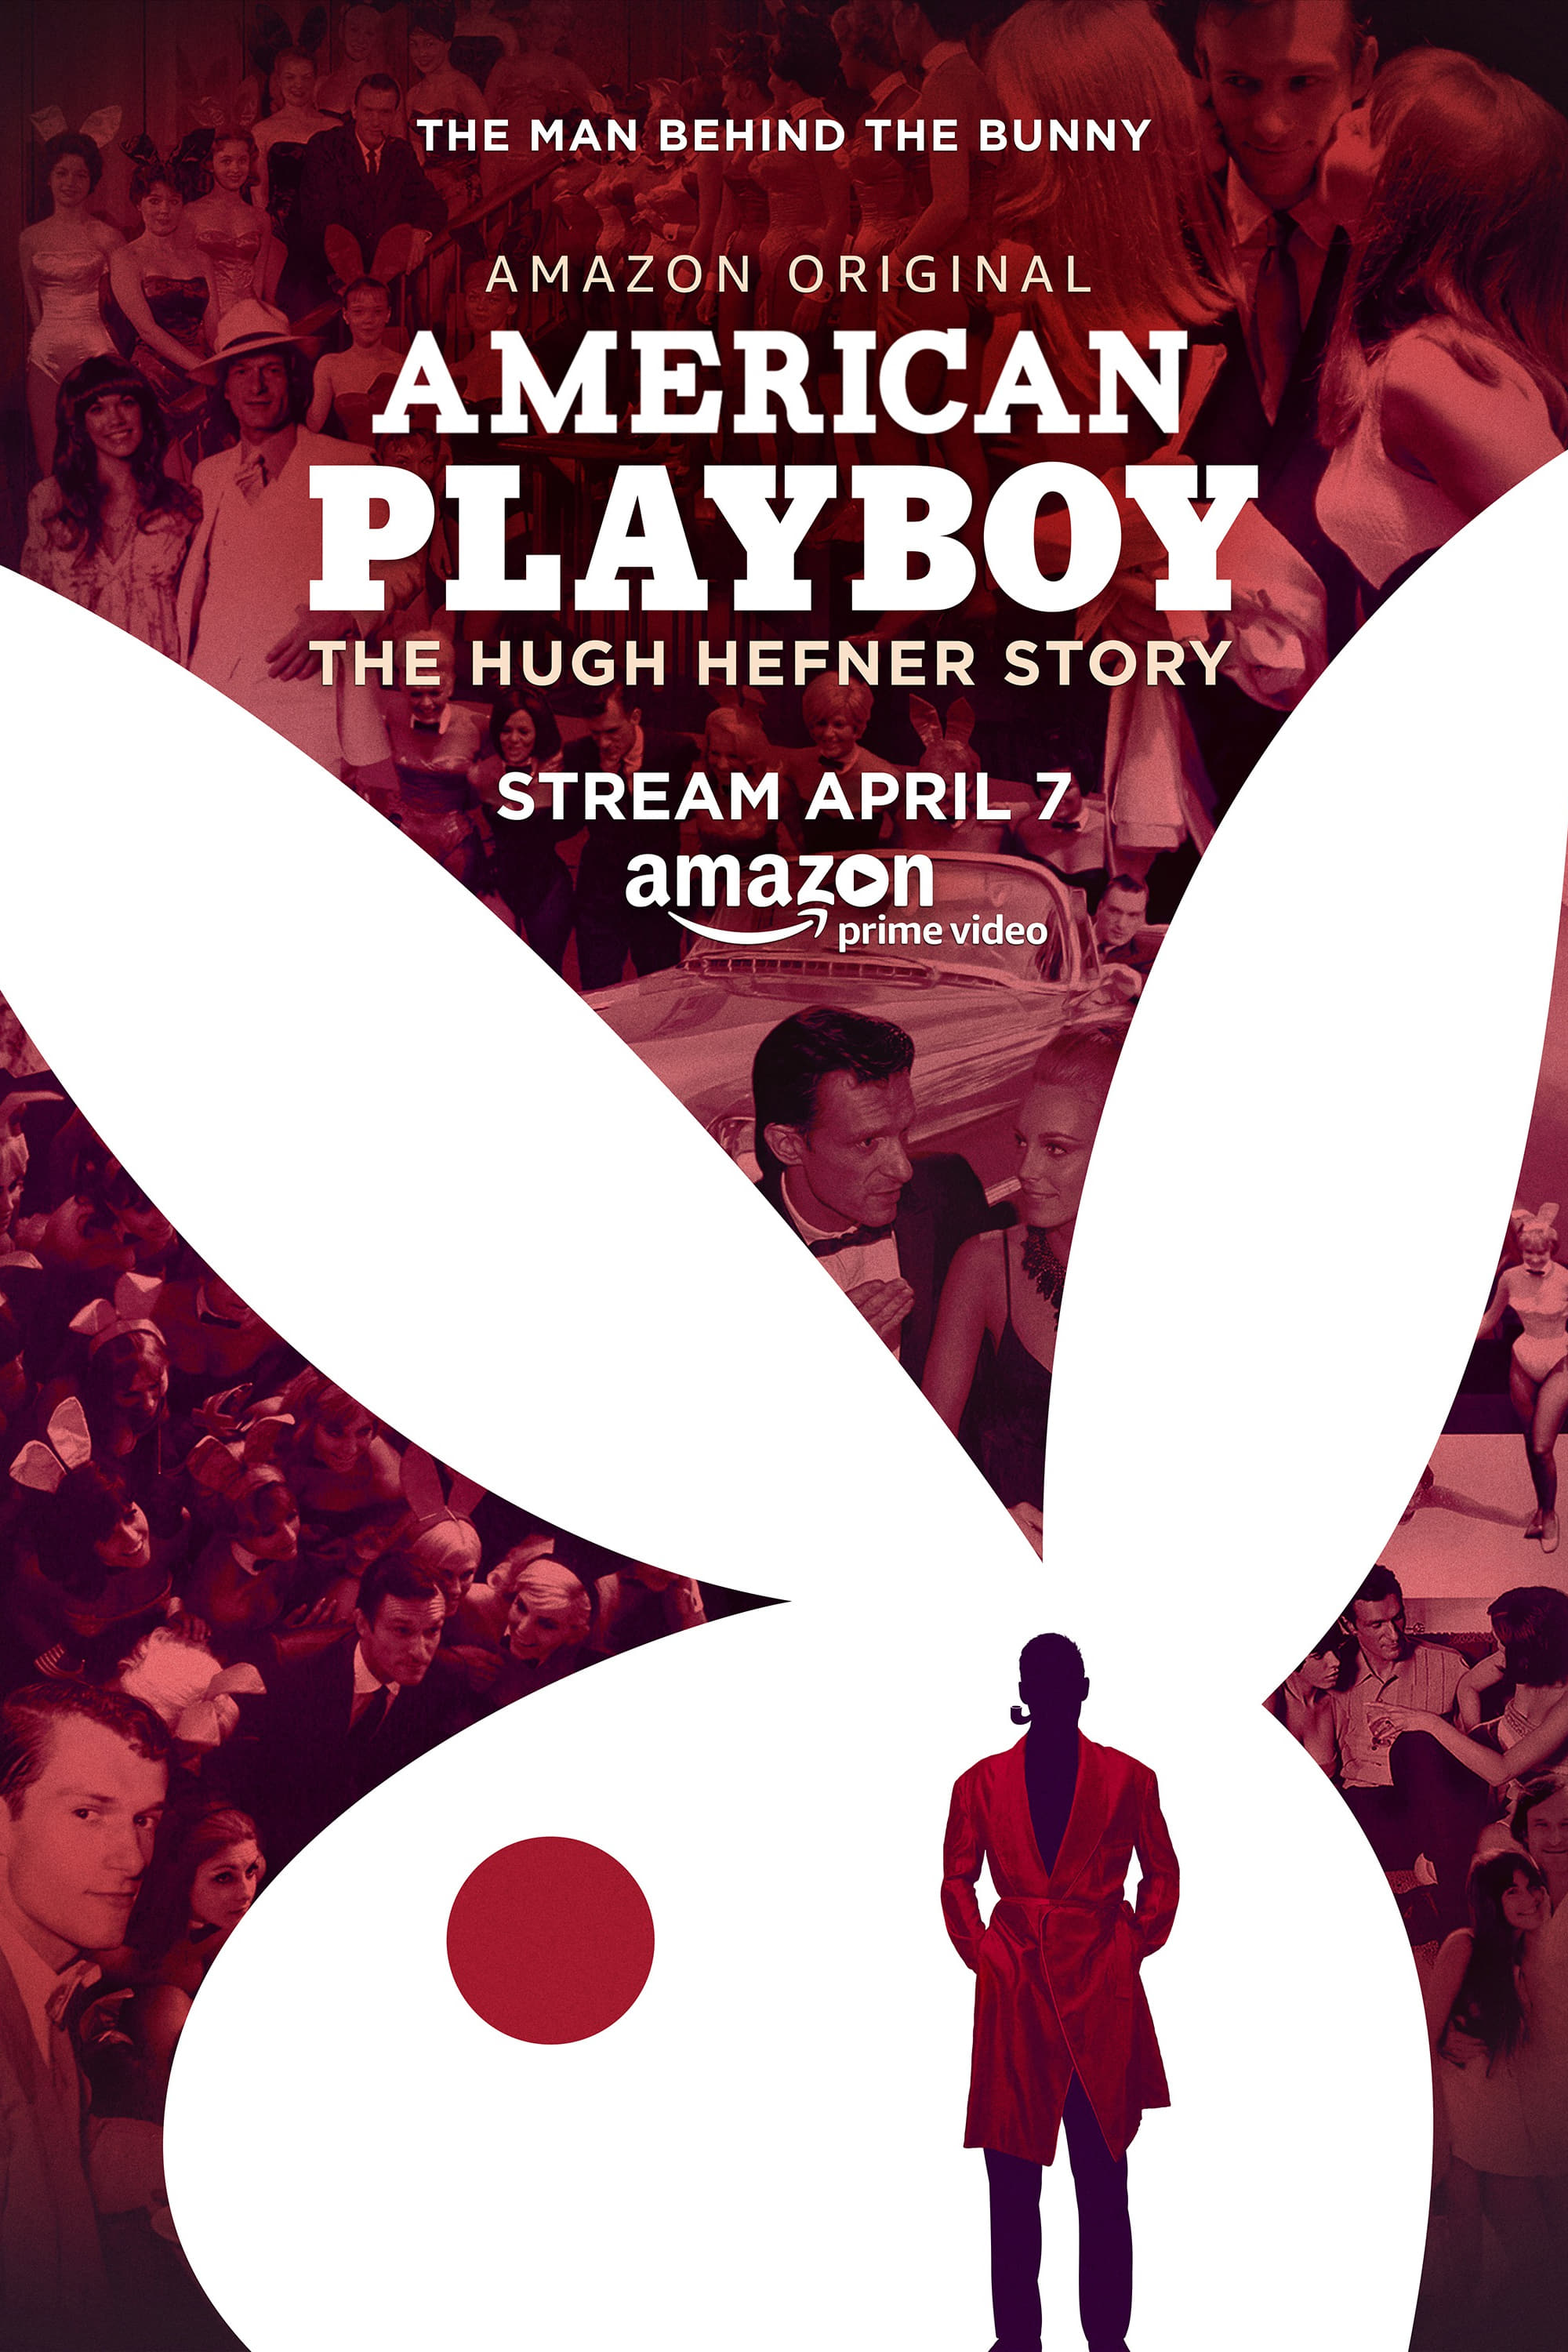 American Playboy: The Hugh Hefner Story' />